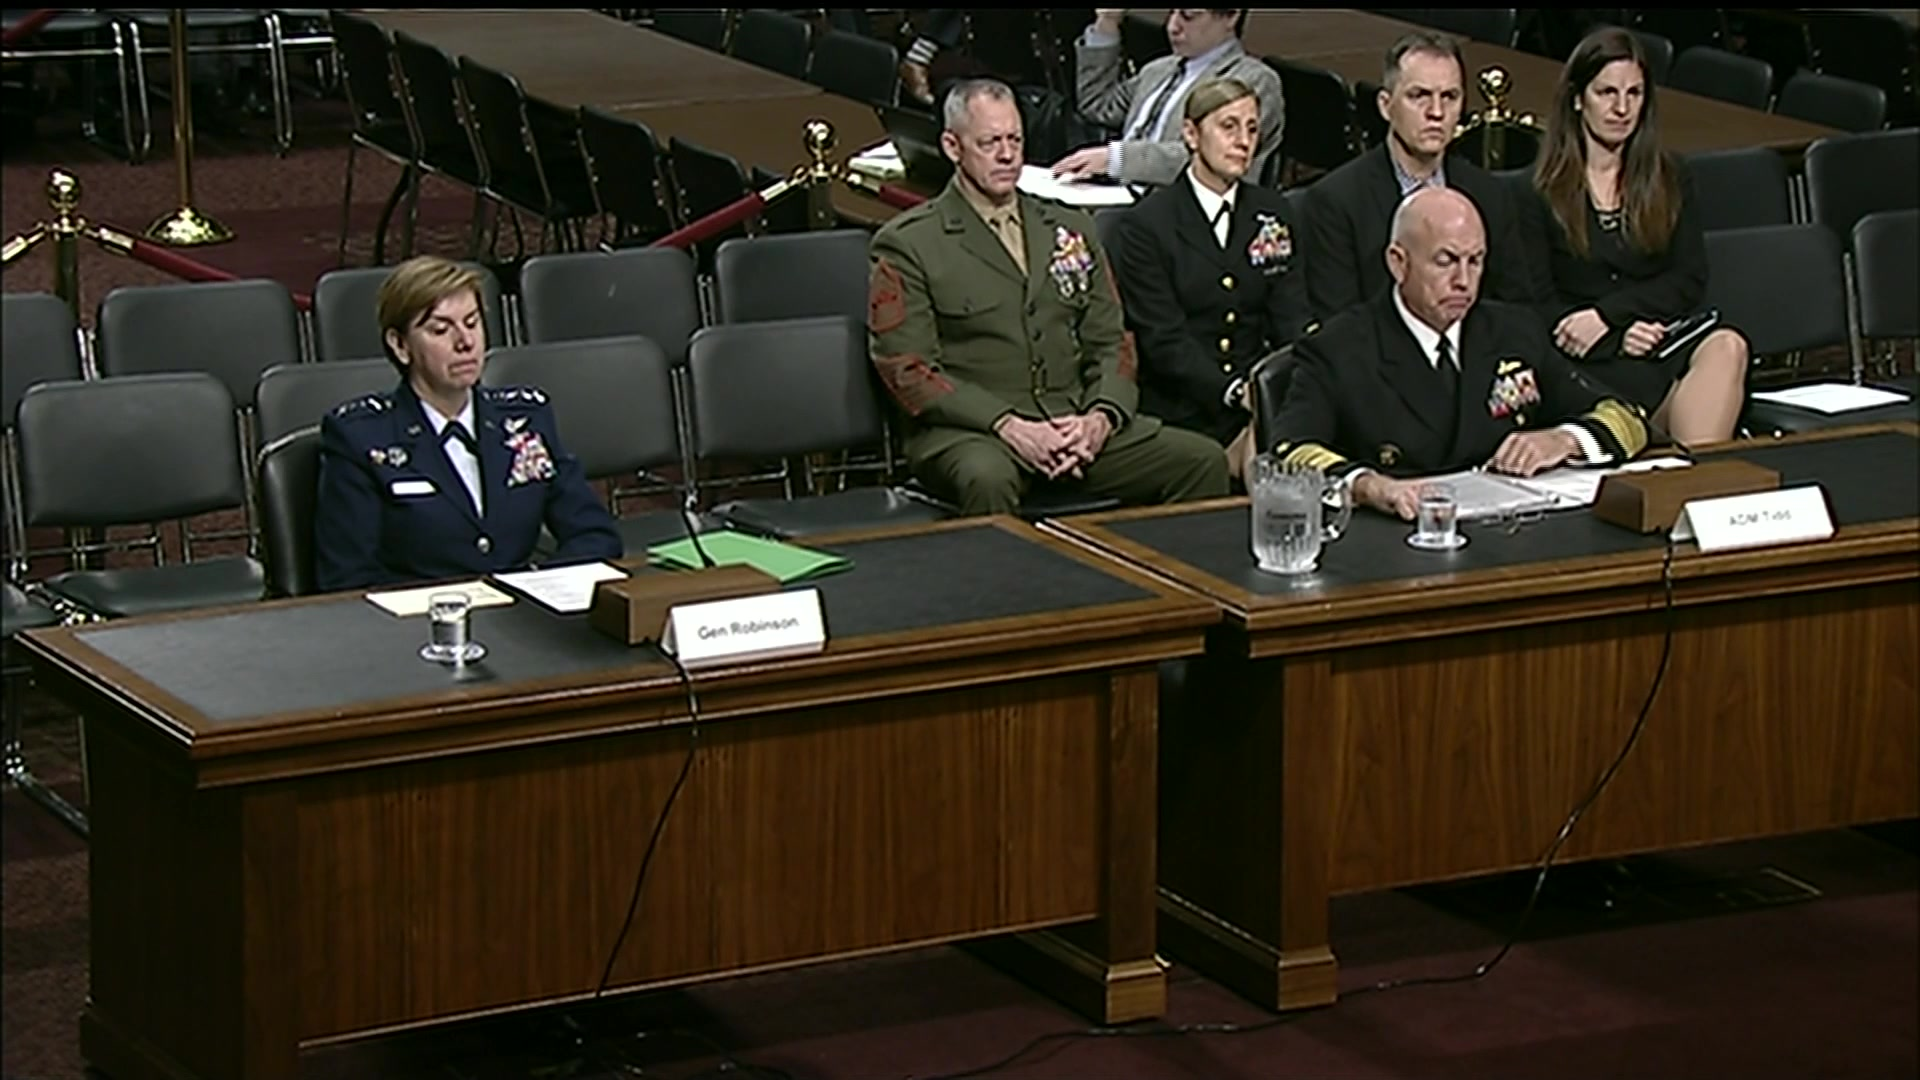 Air Force Gen. Lori J. Robinson, commander of North American Air Defense Command and U.S. Northern Command, and Navy Adm. Kurt W. Tidd, commander of U.S. Southern Command, testify at a Senate Armed Services Committee hearing on the defense authorization request for fiscal year 2019 and the Future Years Defense Program, Feb. 15, 2018.